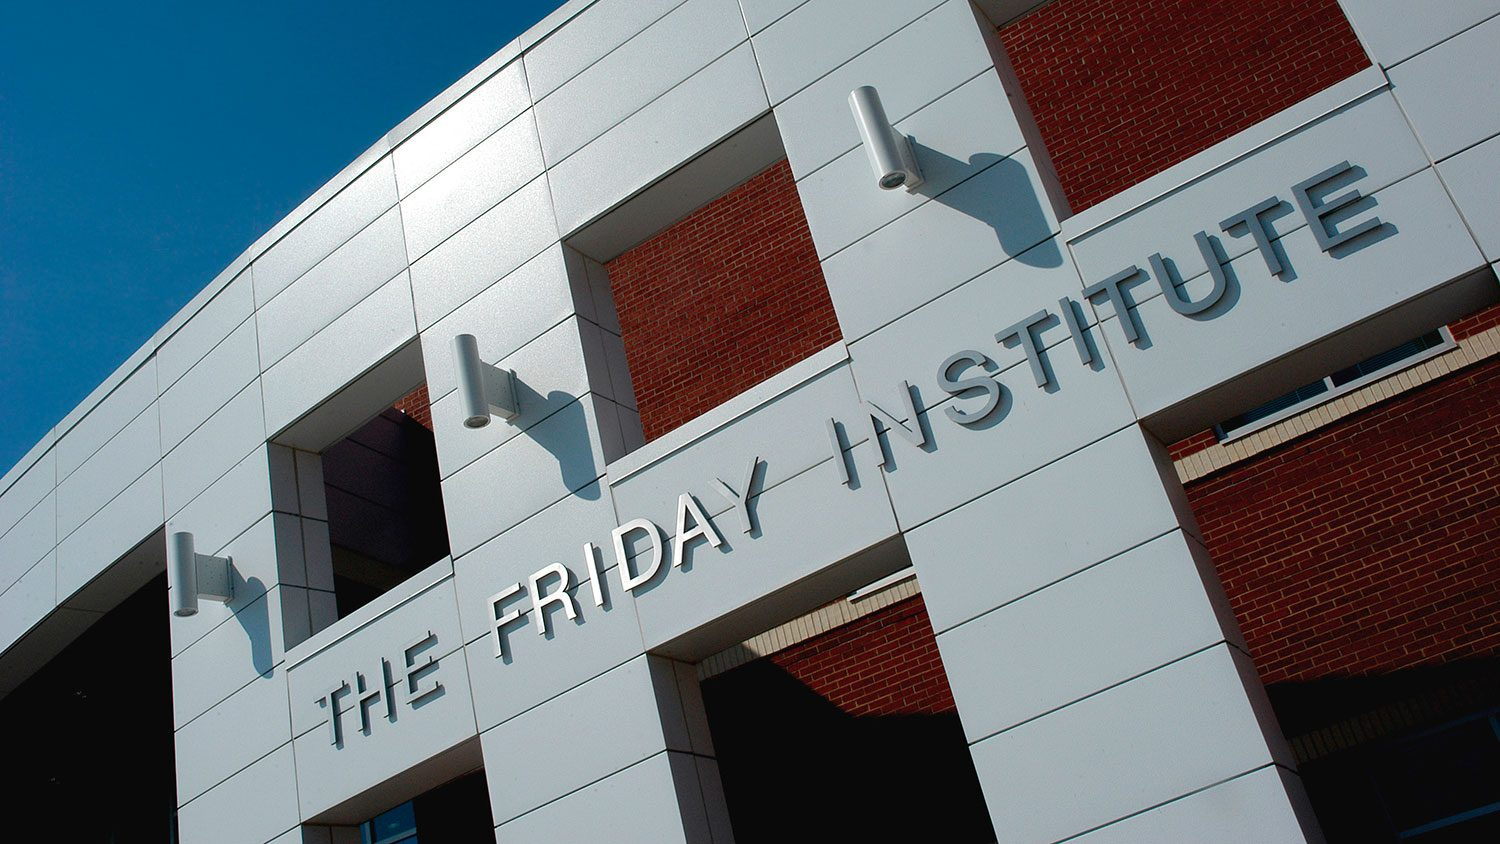 Friday Institute